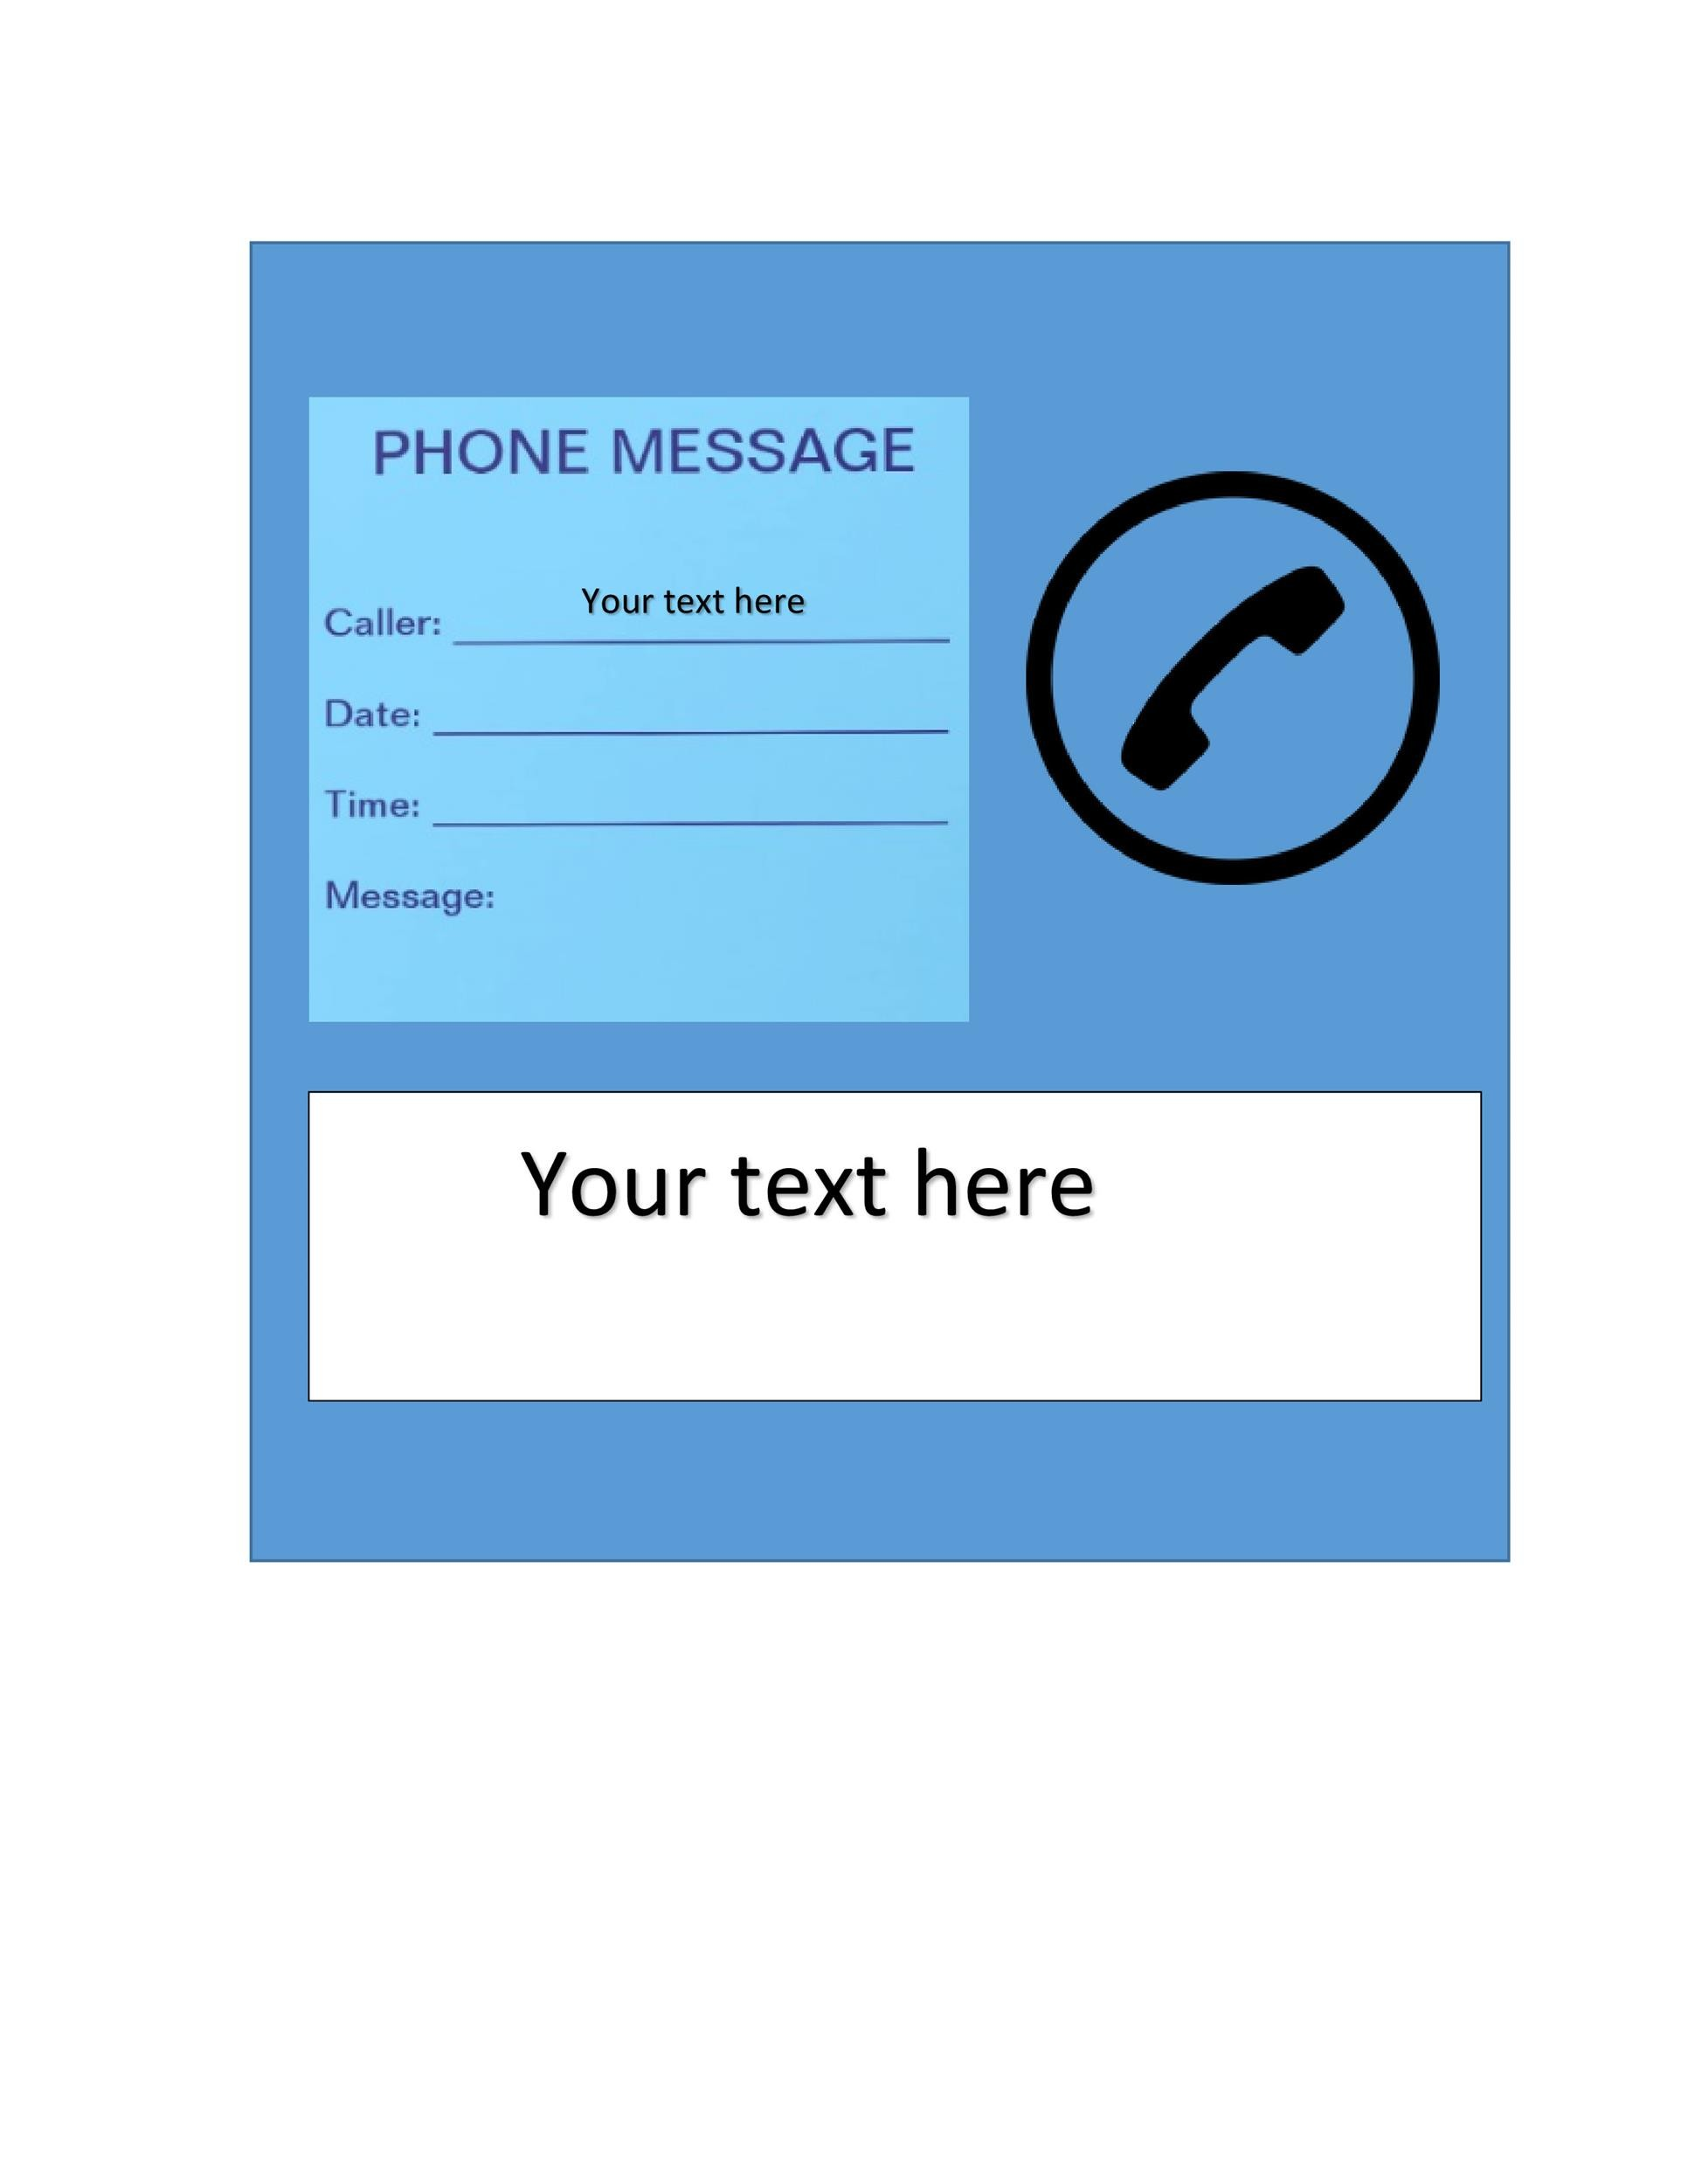 Free phone message template 35